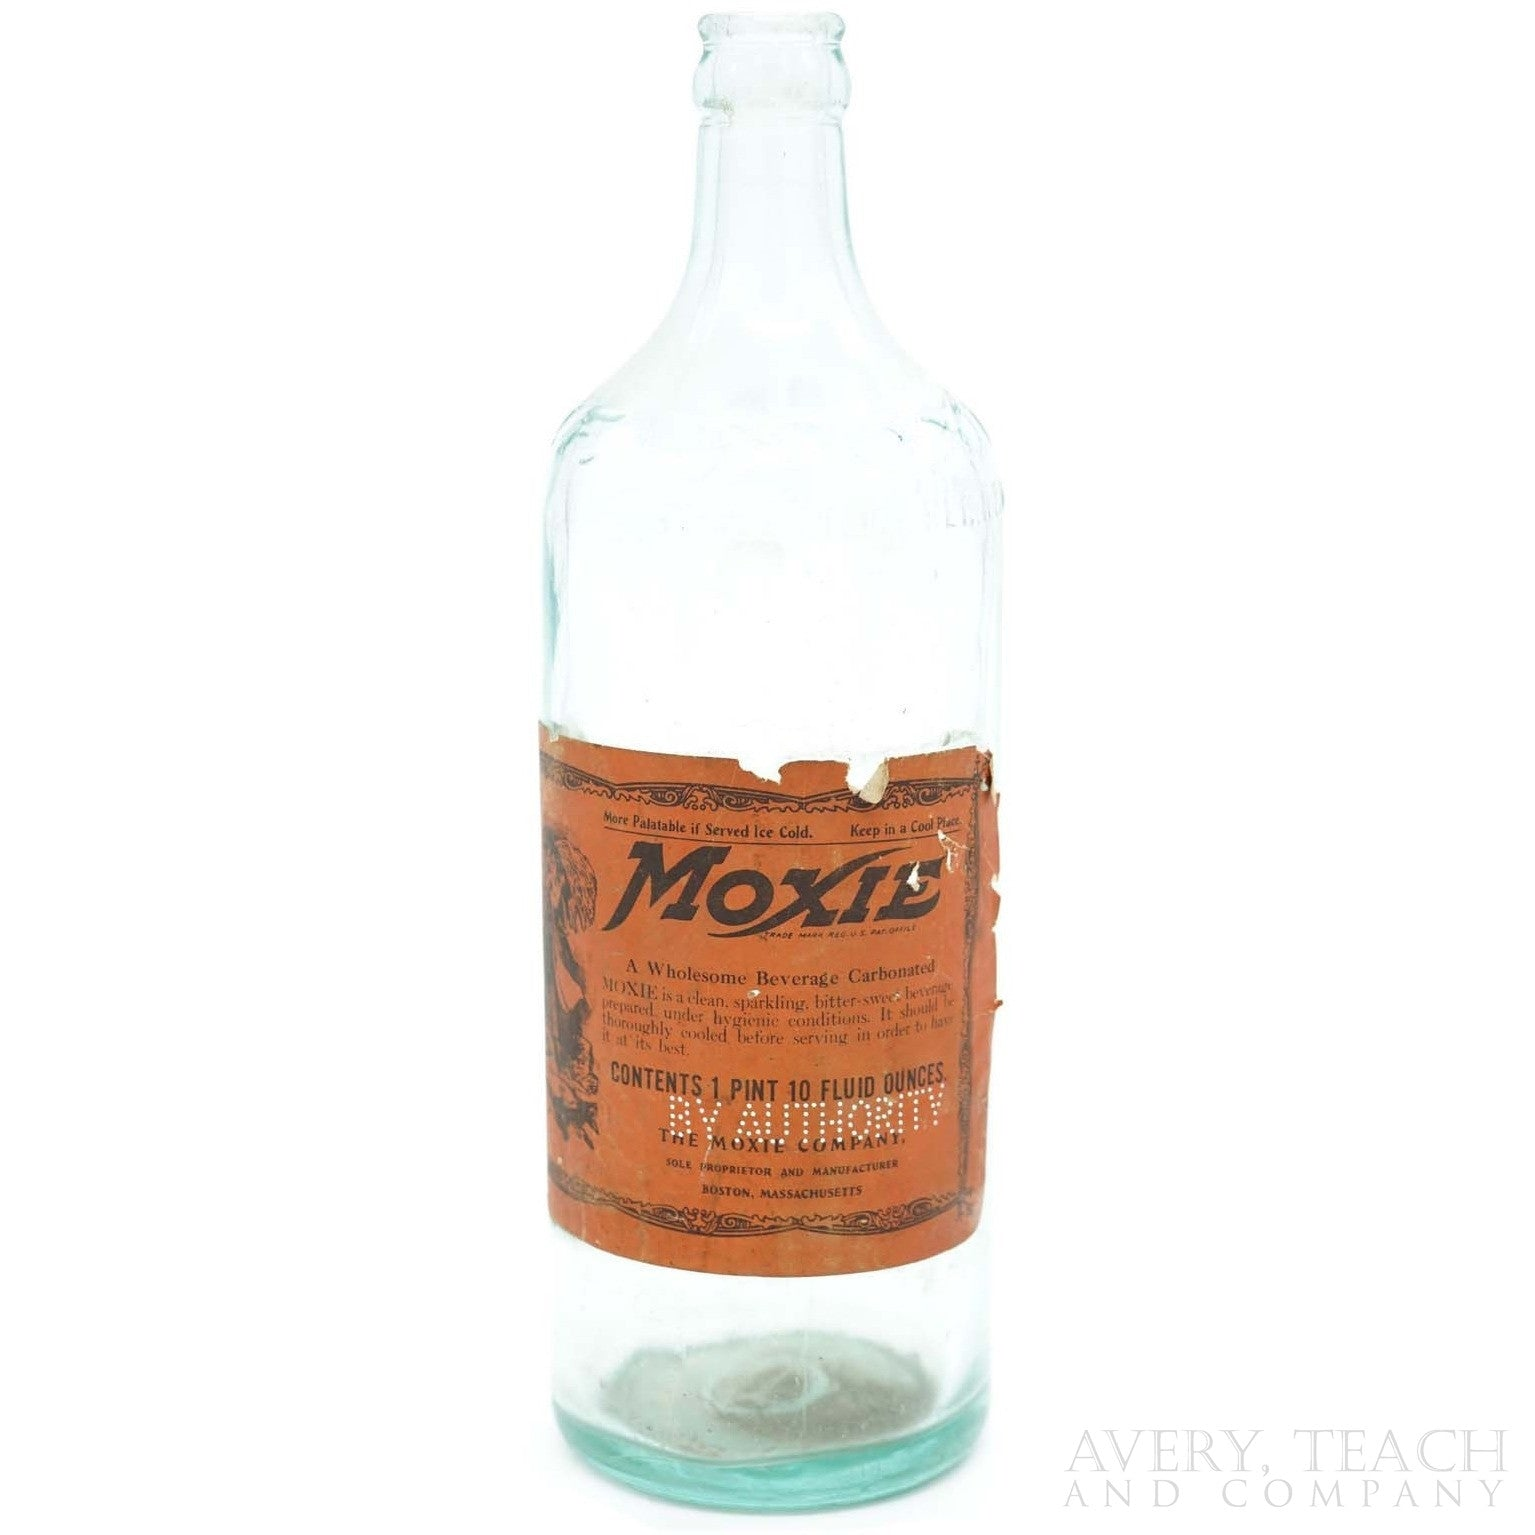 Antique Moxie Bottle